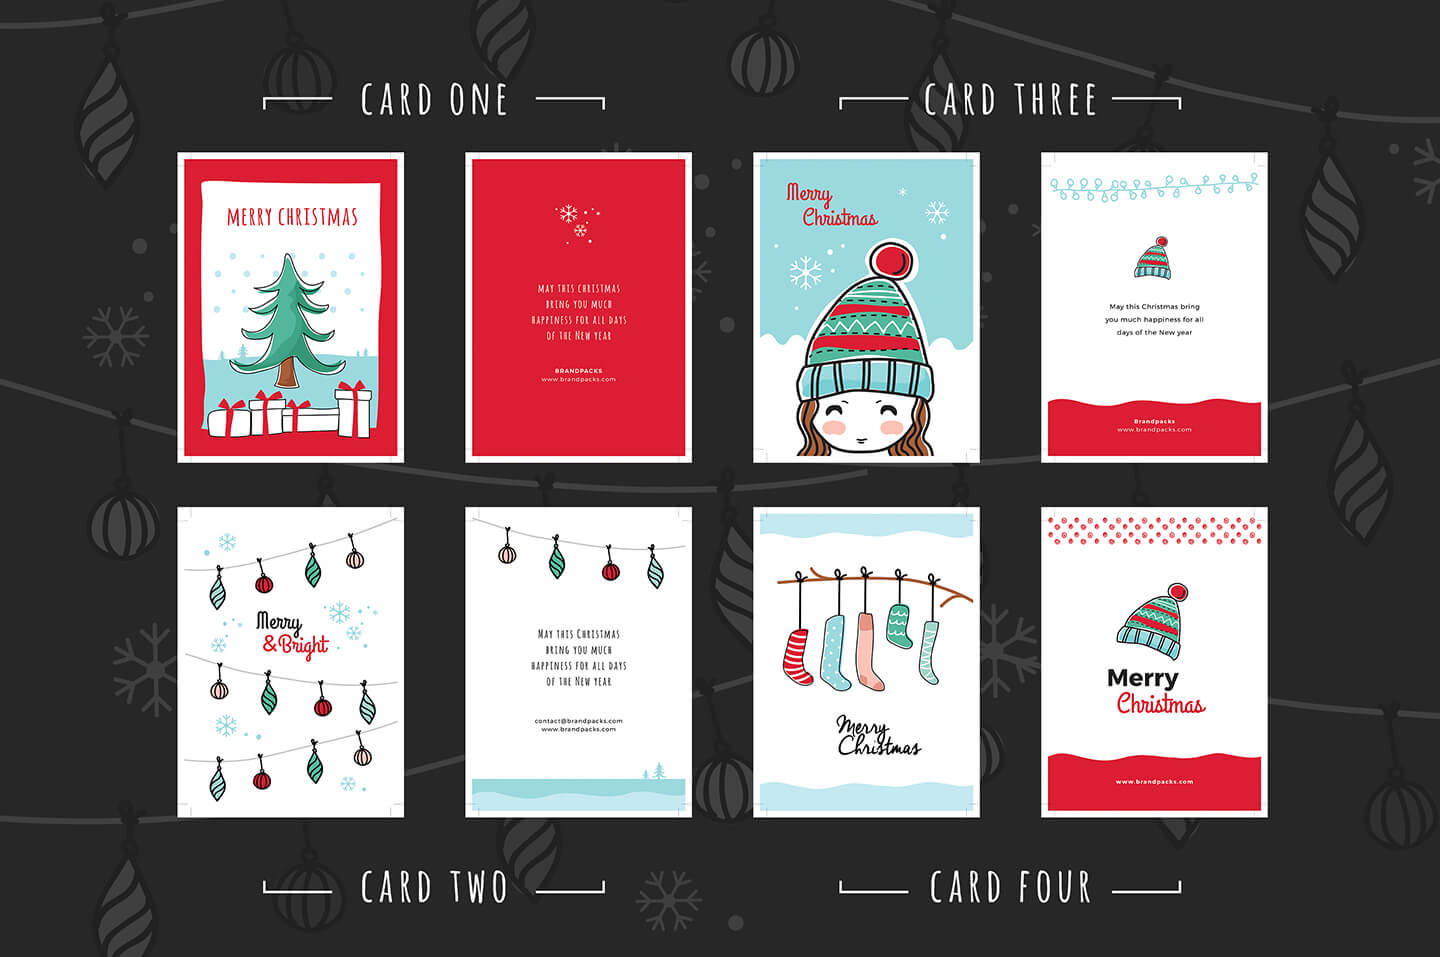 005 Template Ideas Free Christmas Greeting Card Templates Pertaining To Free Christmas Card Templates For Photoshop